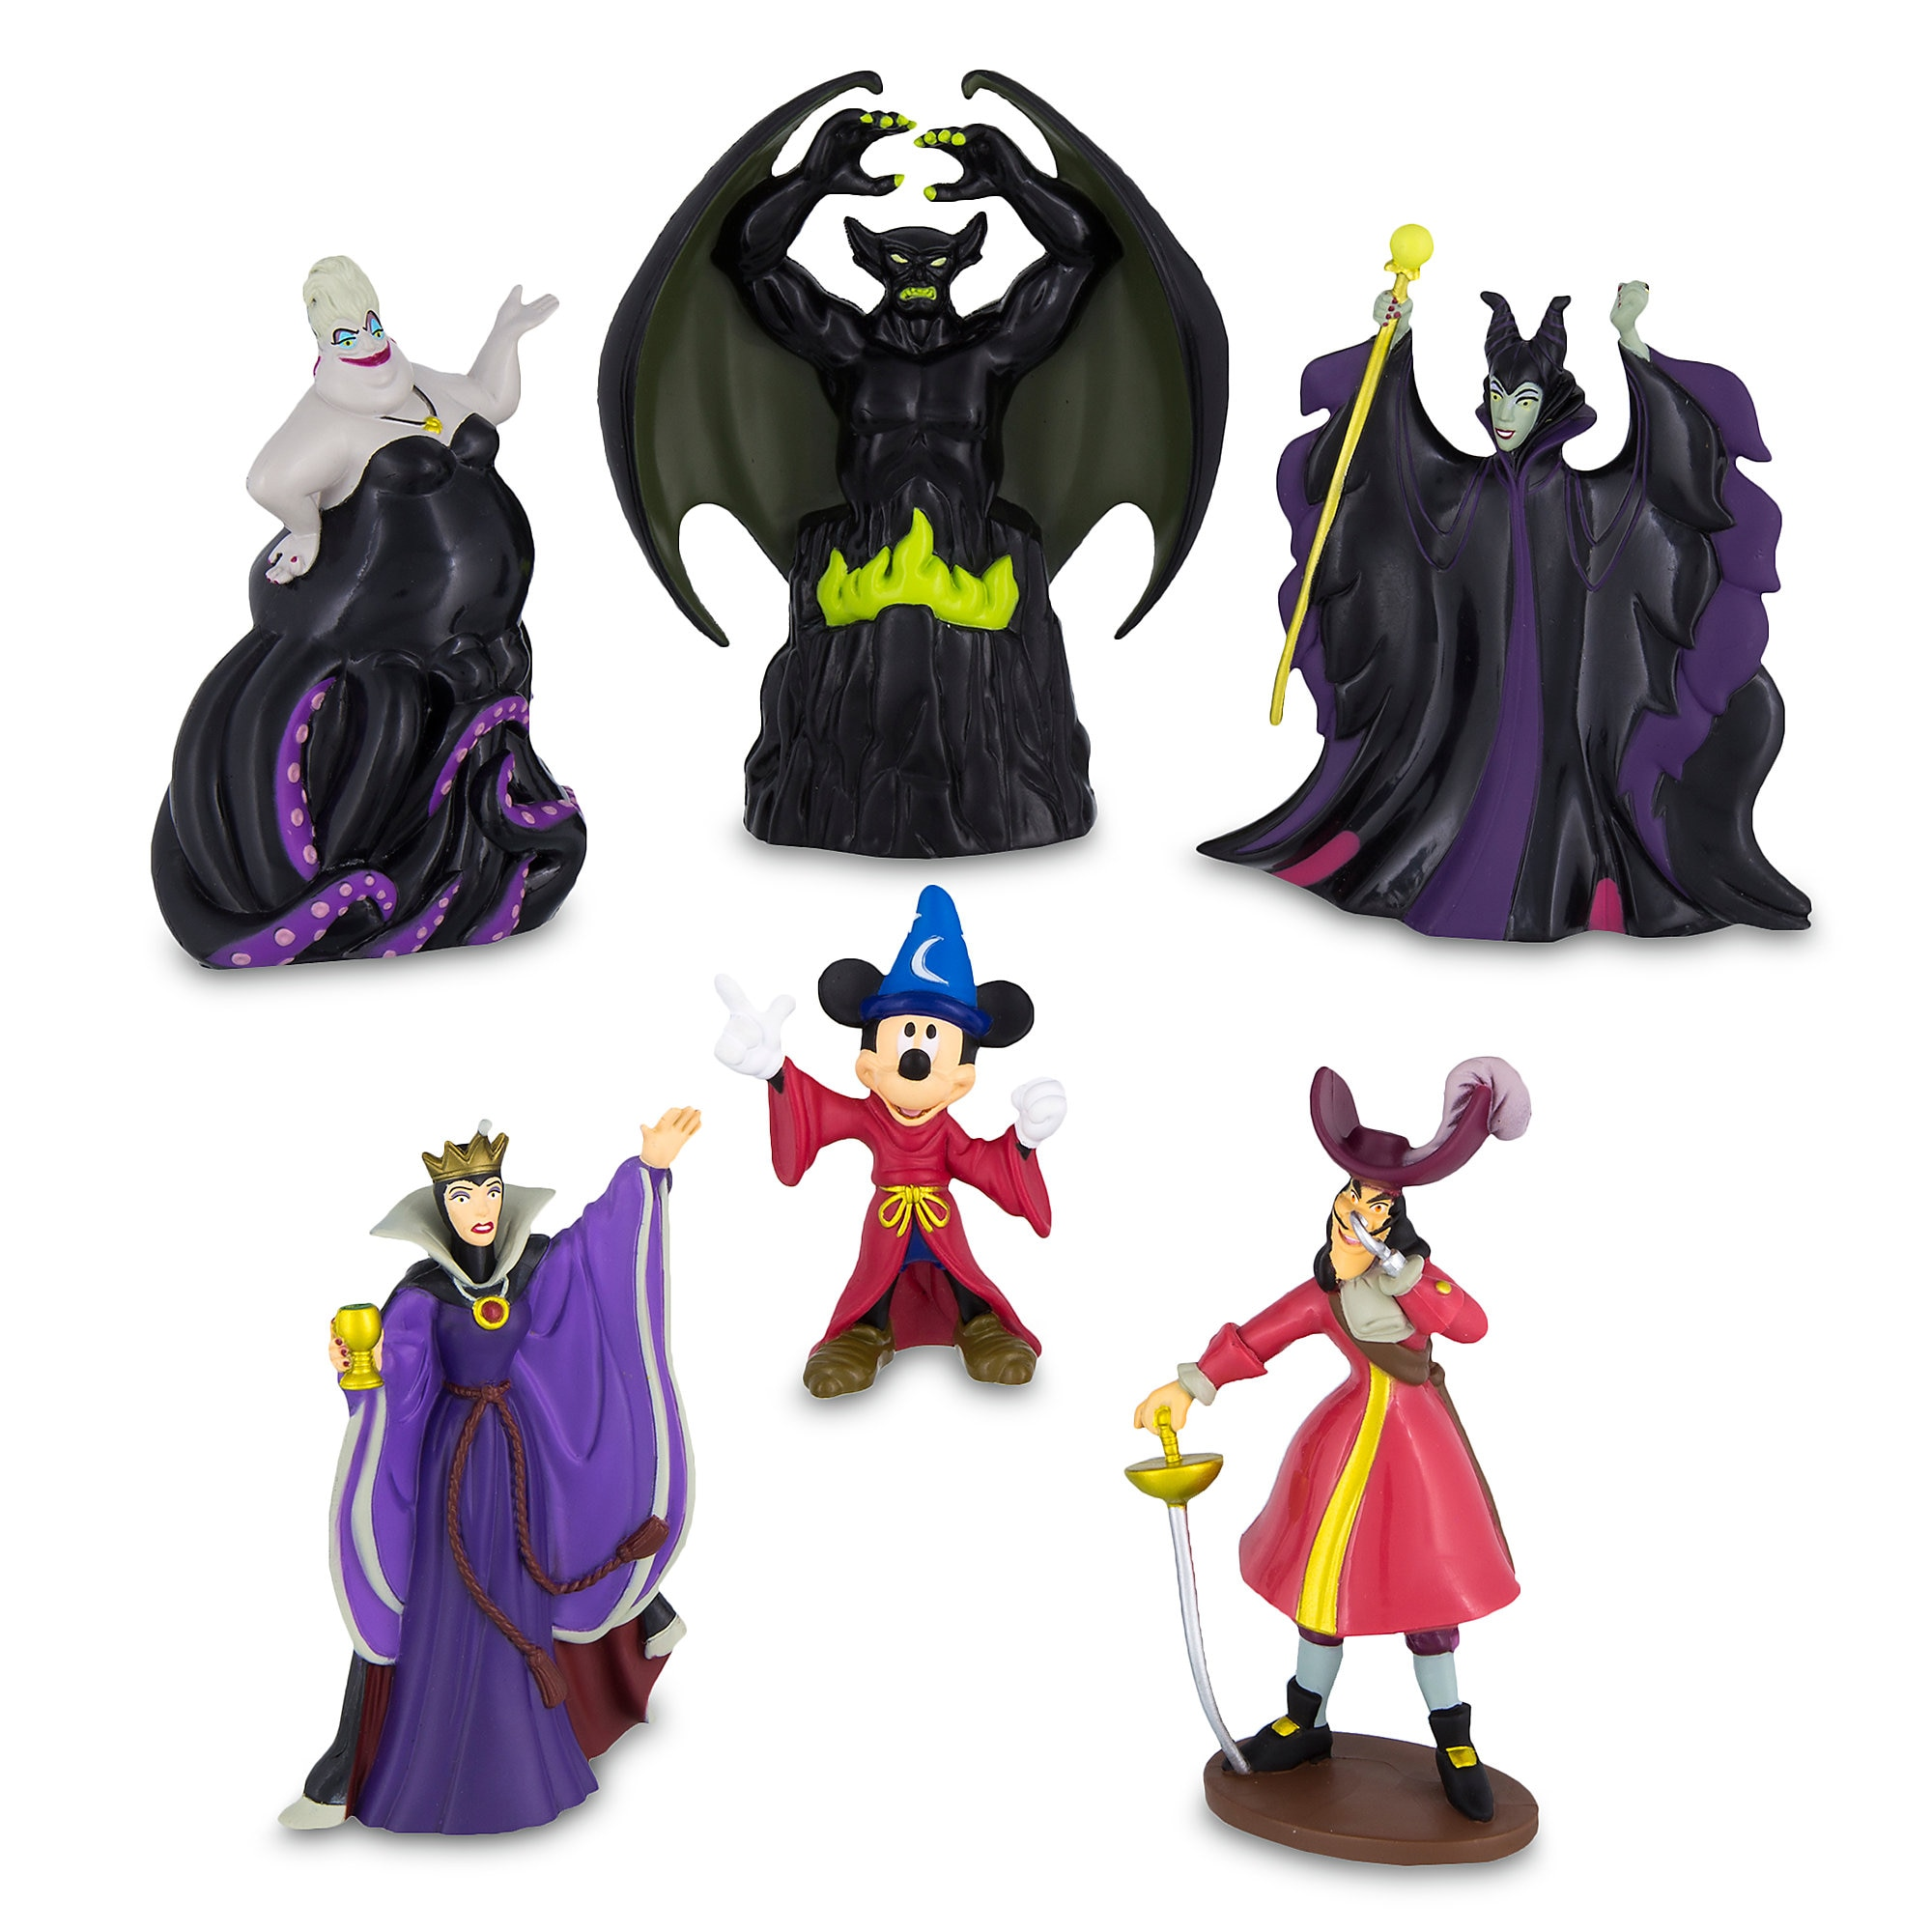 Sorcerer Mickey Mouse vs. Disney Villains Collectible Figures